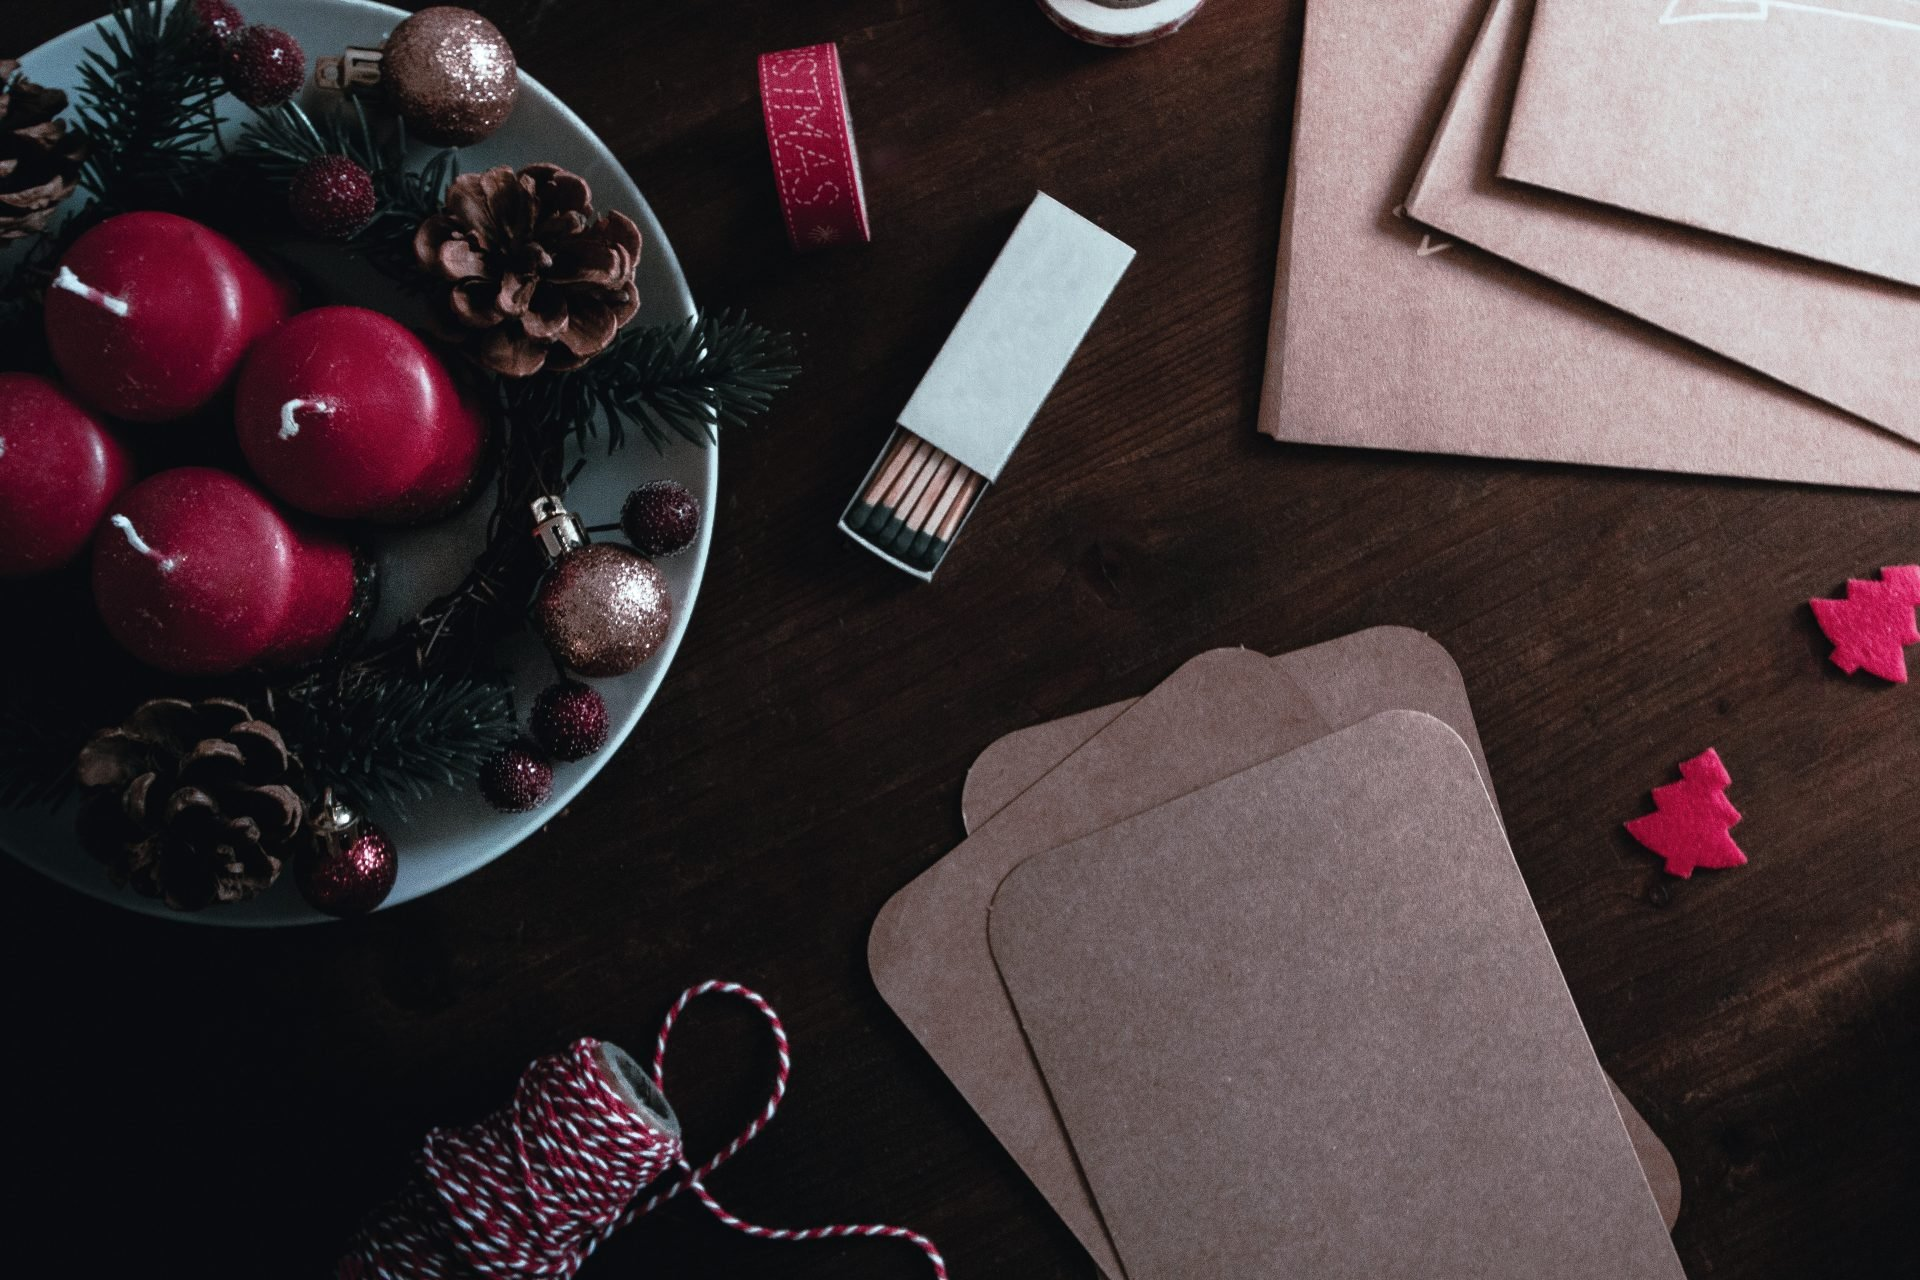 candles, matches, and wrapping paper supplies on a wooden table